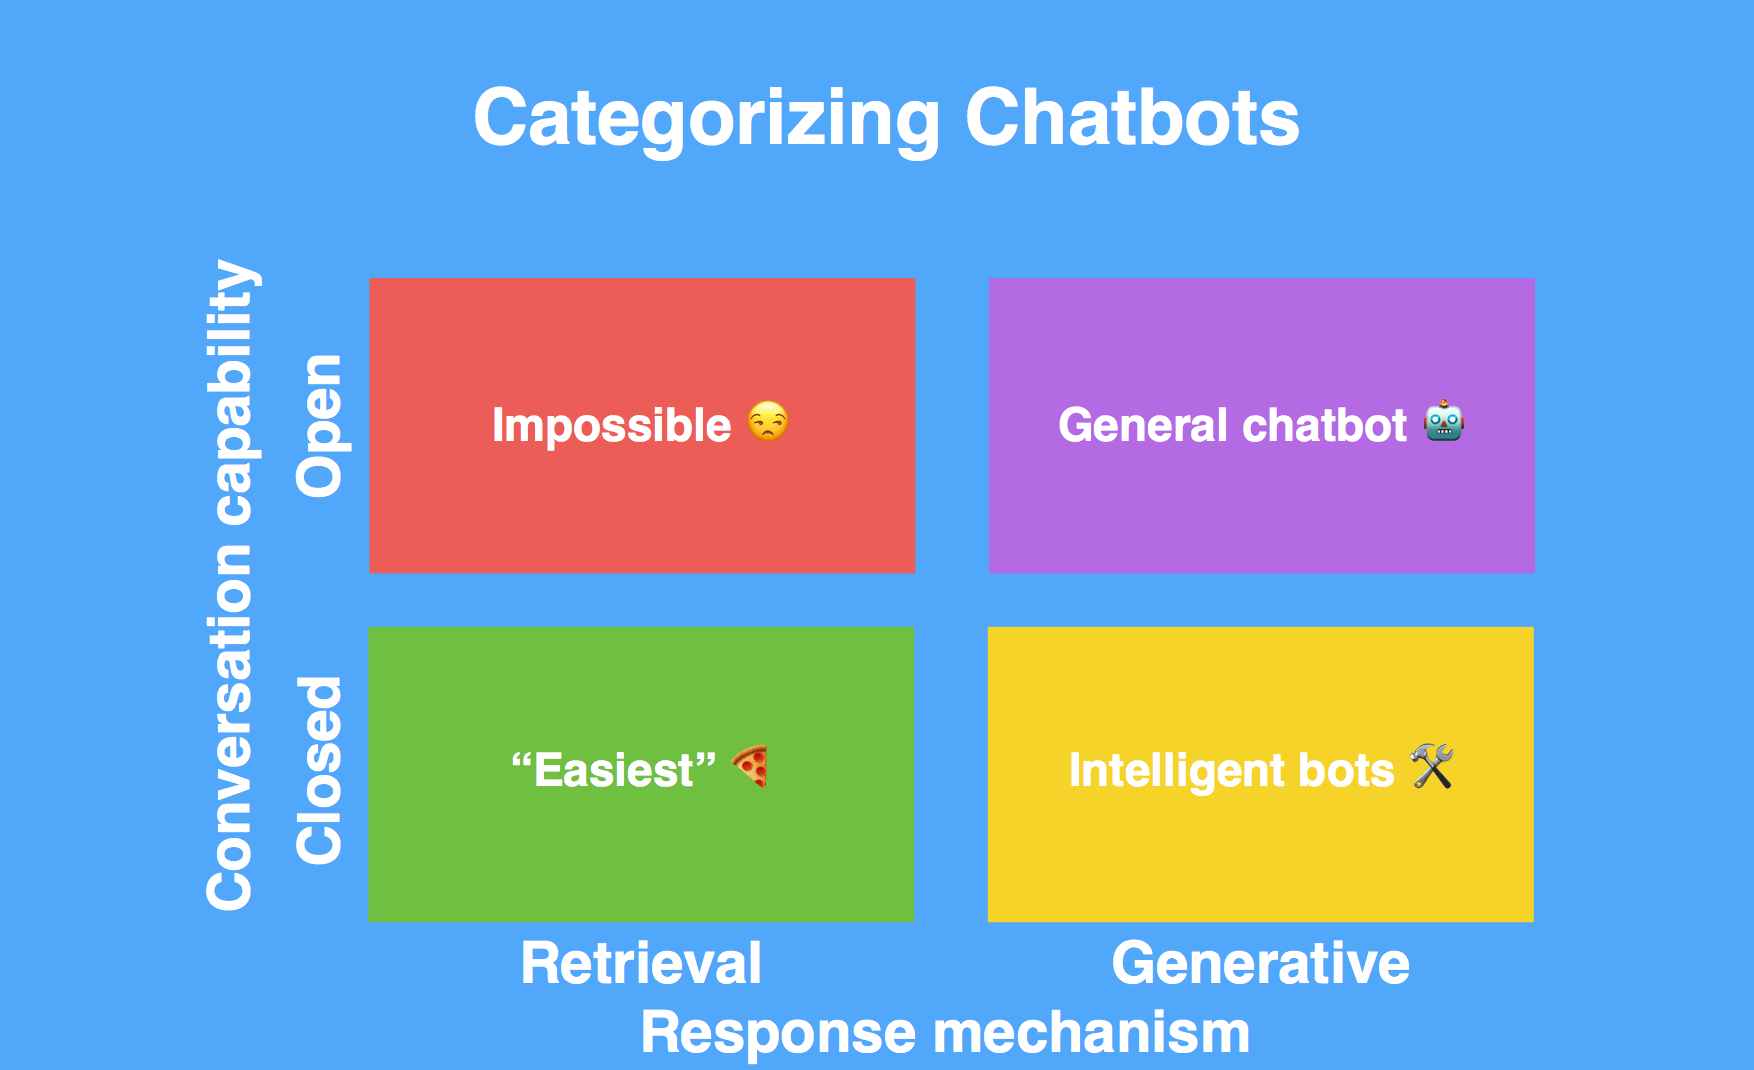 Categorizing Chatbots